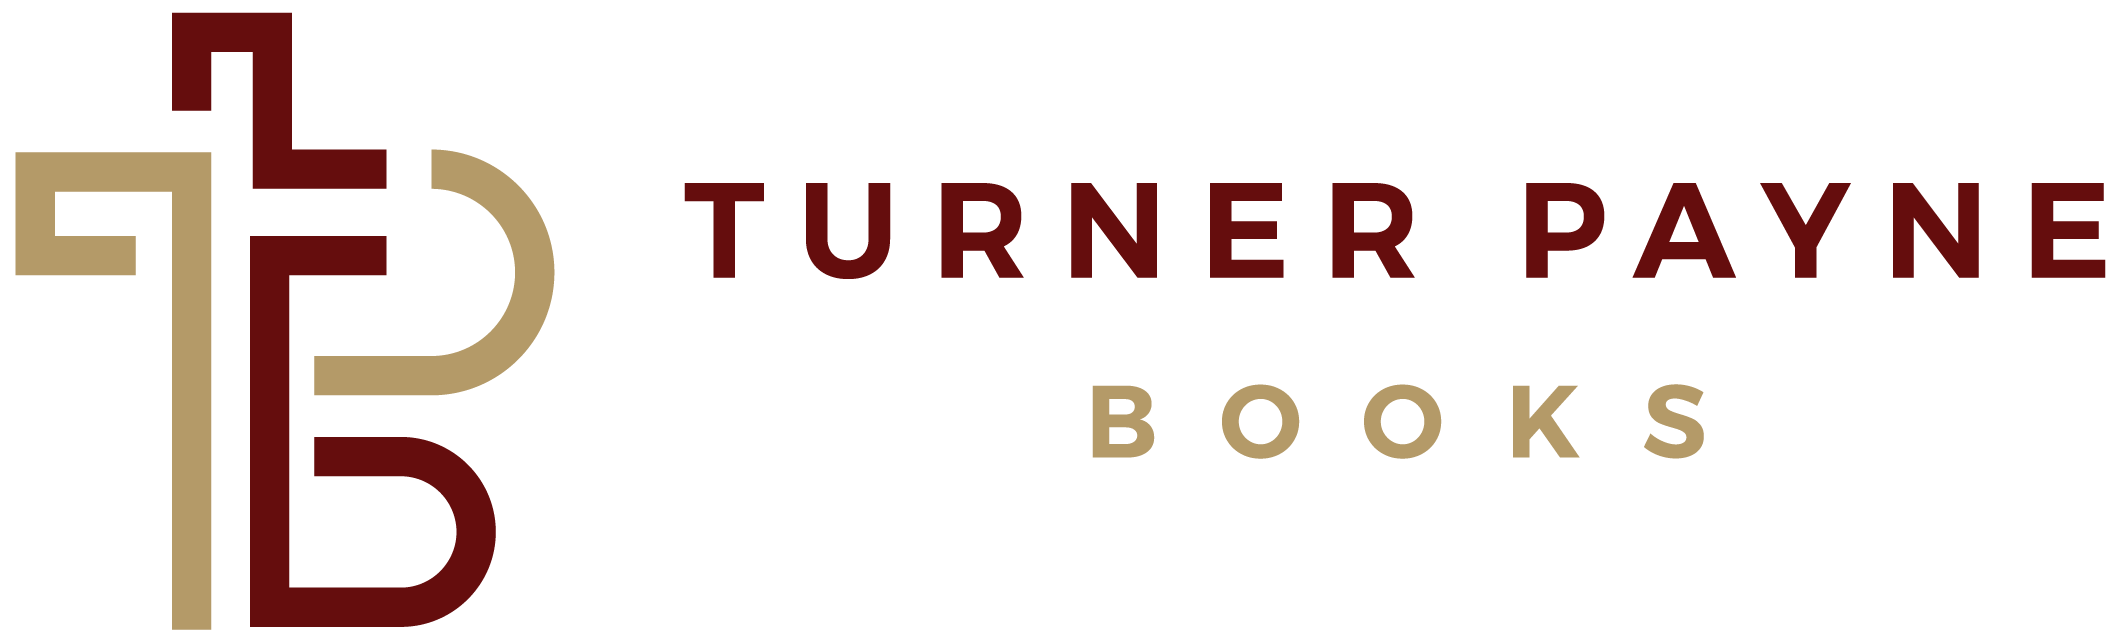 Turner Payne Books